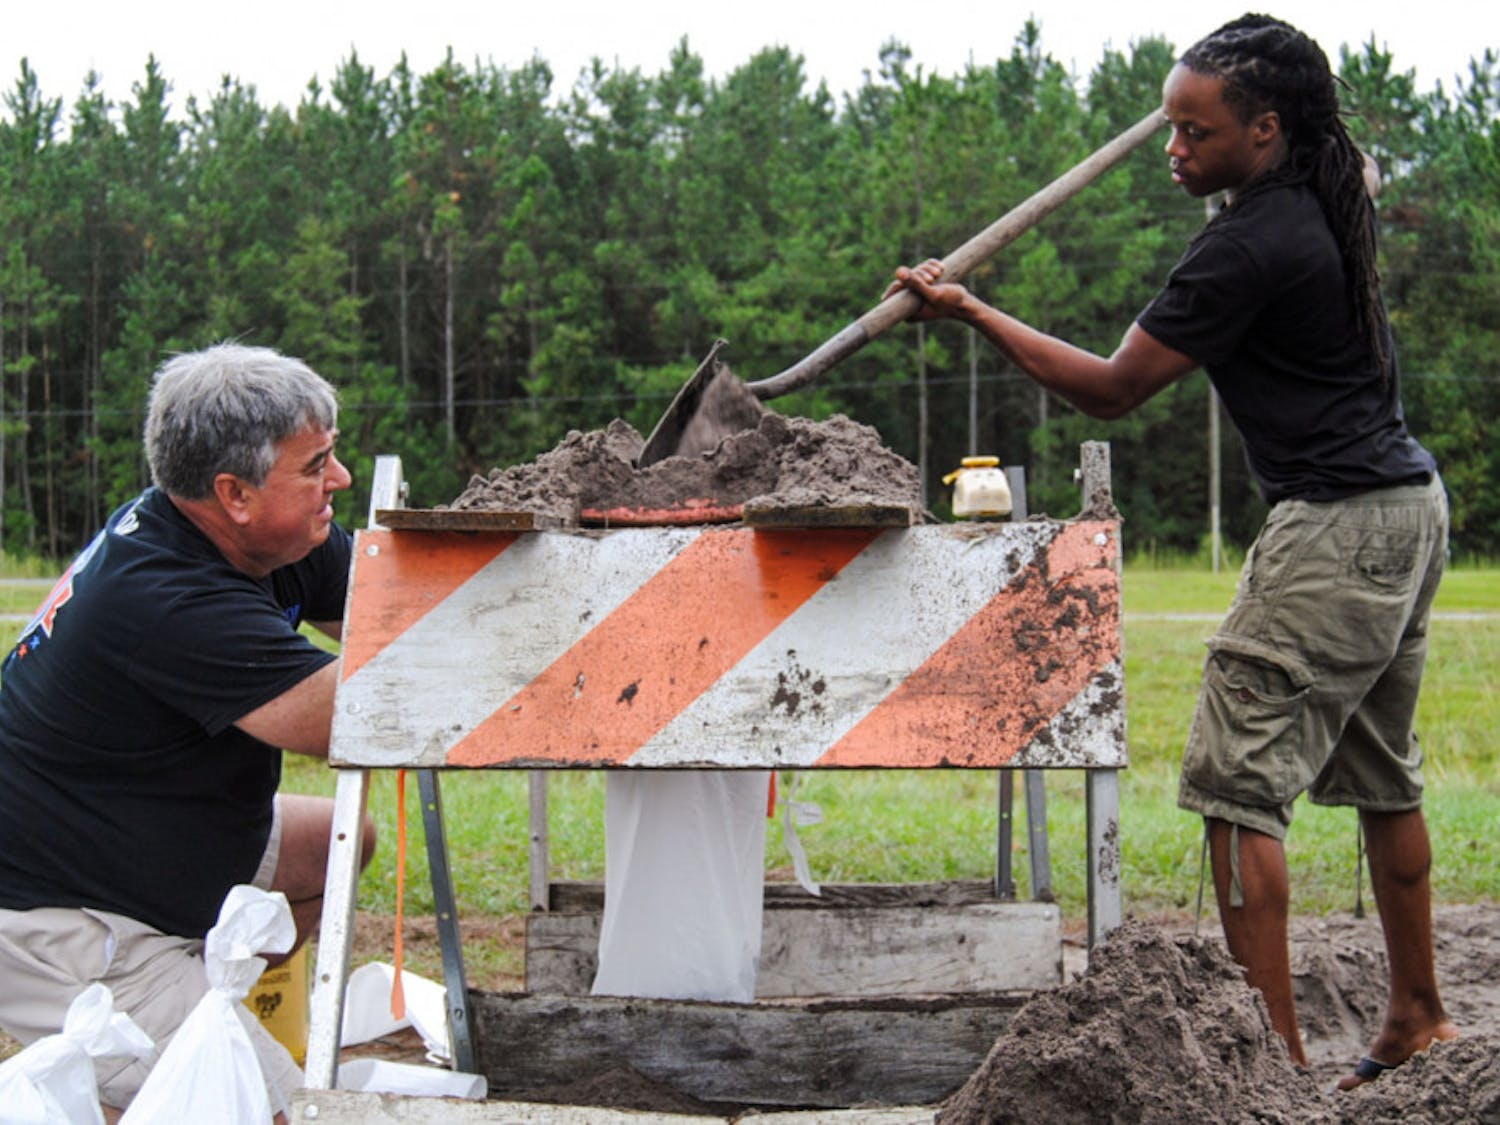 """From left: Gainesville residents Erich Marzolf, 55, and Michael Haynes, 26, help each other make sandbags at the Alachua County Public Works Department's sandbag location, located at 11855 NW U.S. Highway 441, on Thursday morning. The men are strangers, but they are both working to prepare for possible Hurricane Matthew water buildup. """"See if I can protect the front of my house,"""" Marzolf said. """"We don't have gutters."""""""